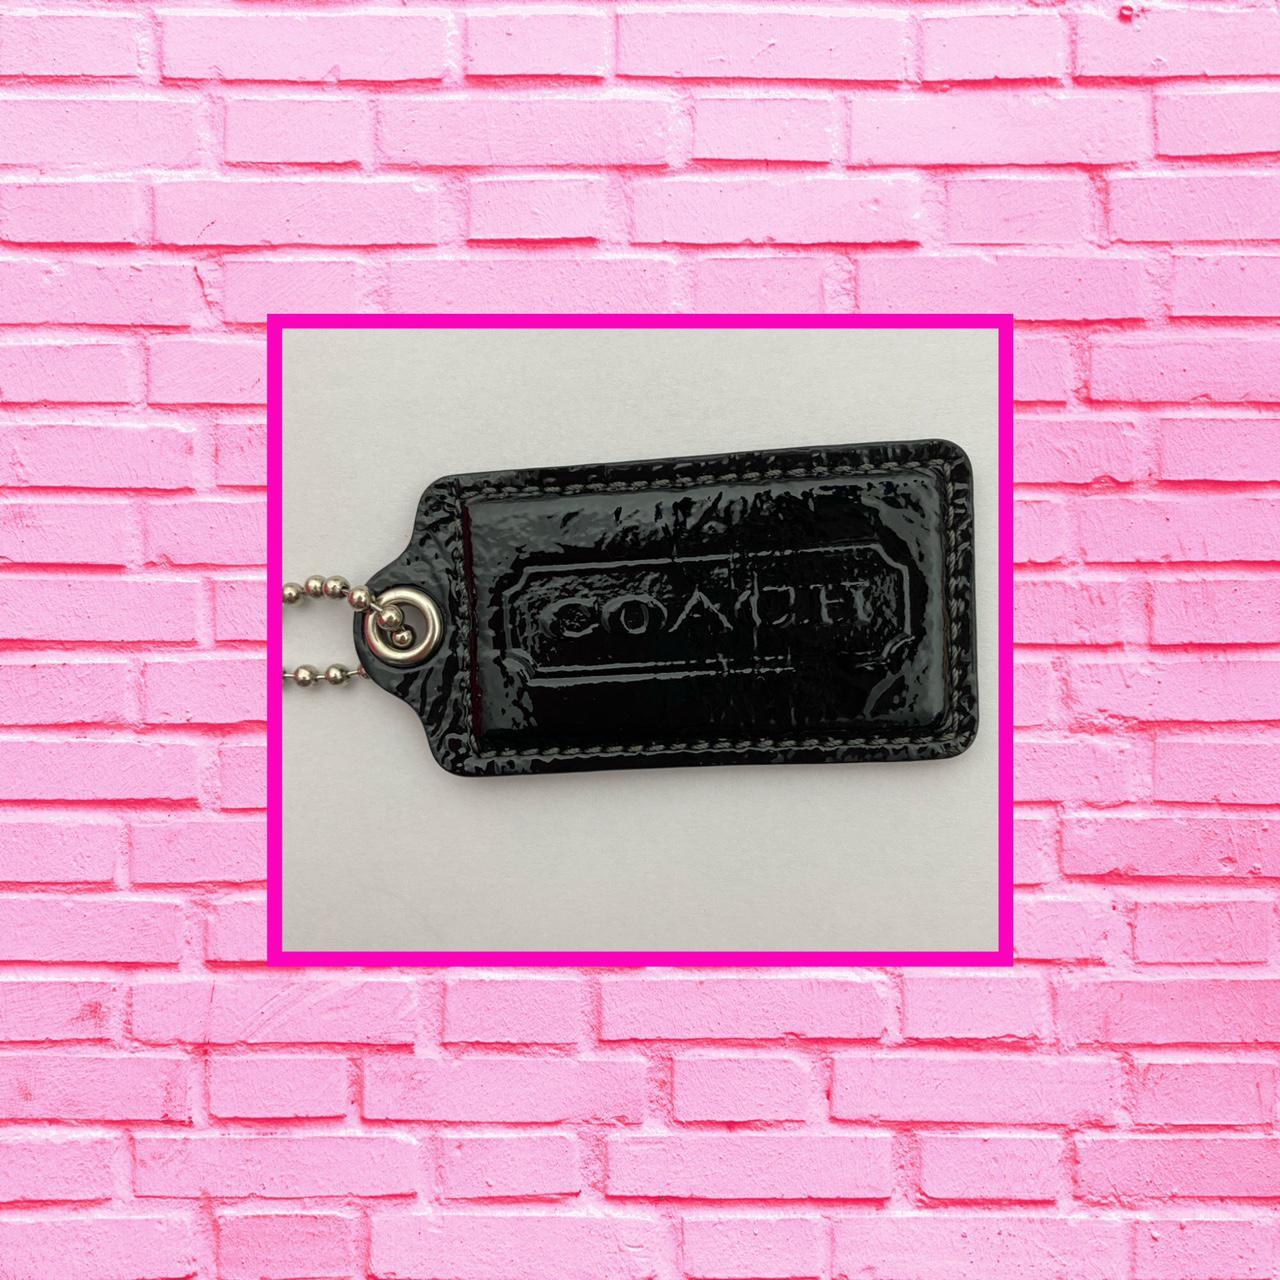 Product Image 1 - COACH BLACK PATENT LEATHER BAG